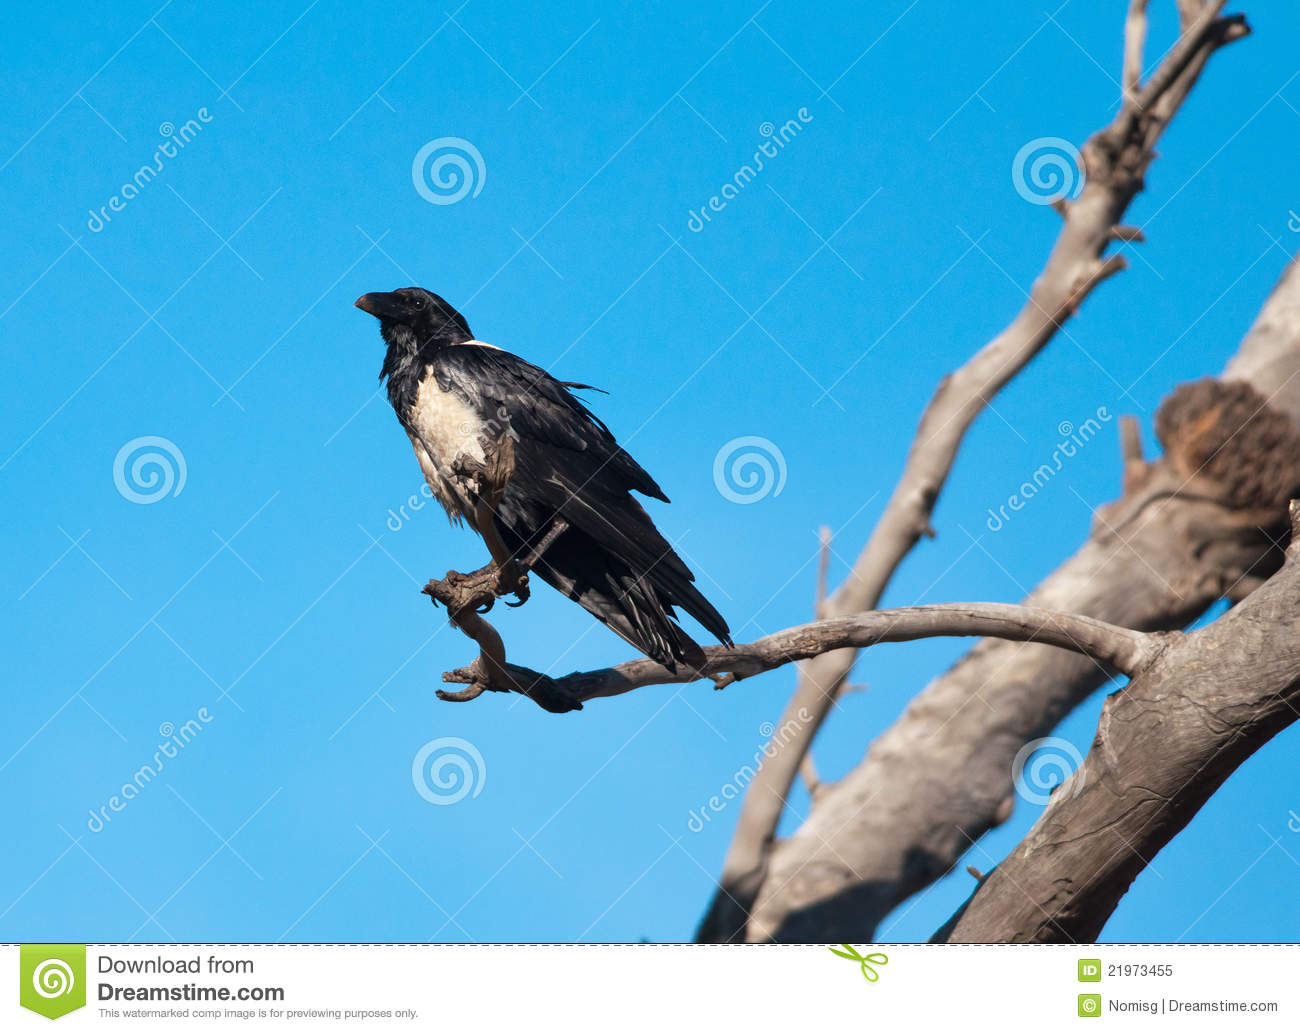 Pied Crow clipart #10, Download drawings